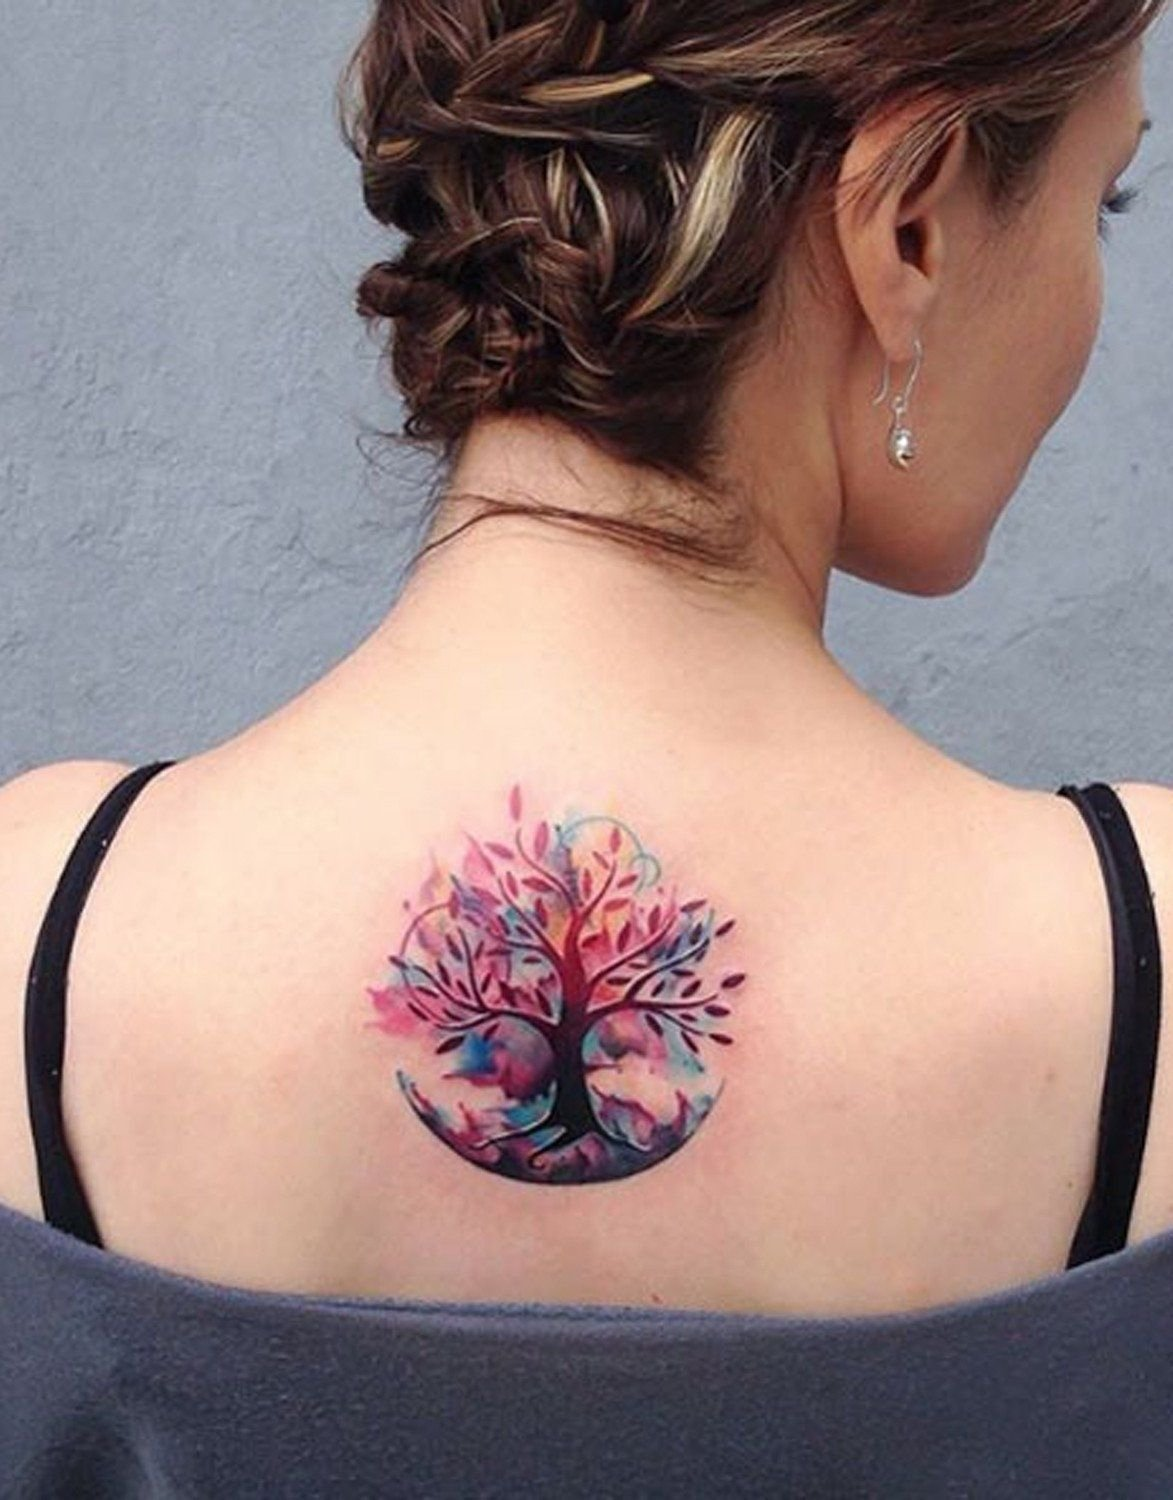 10 Great Cool Tattoo Ideas For Women unique and cool tree of life family tree watercolor back tattoo 2020